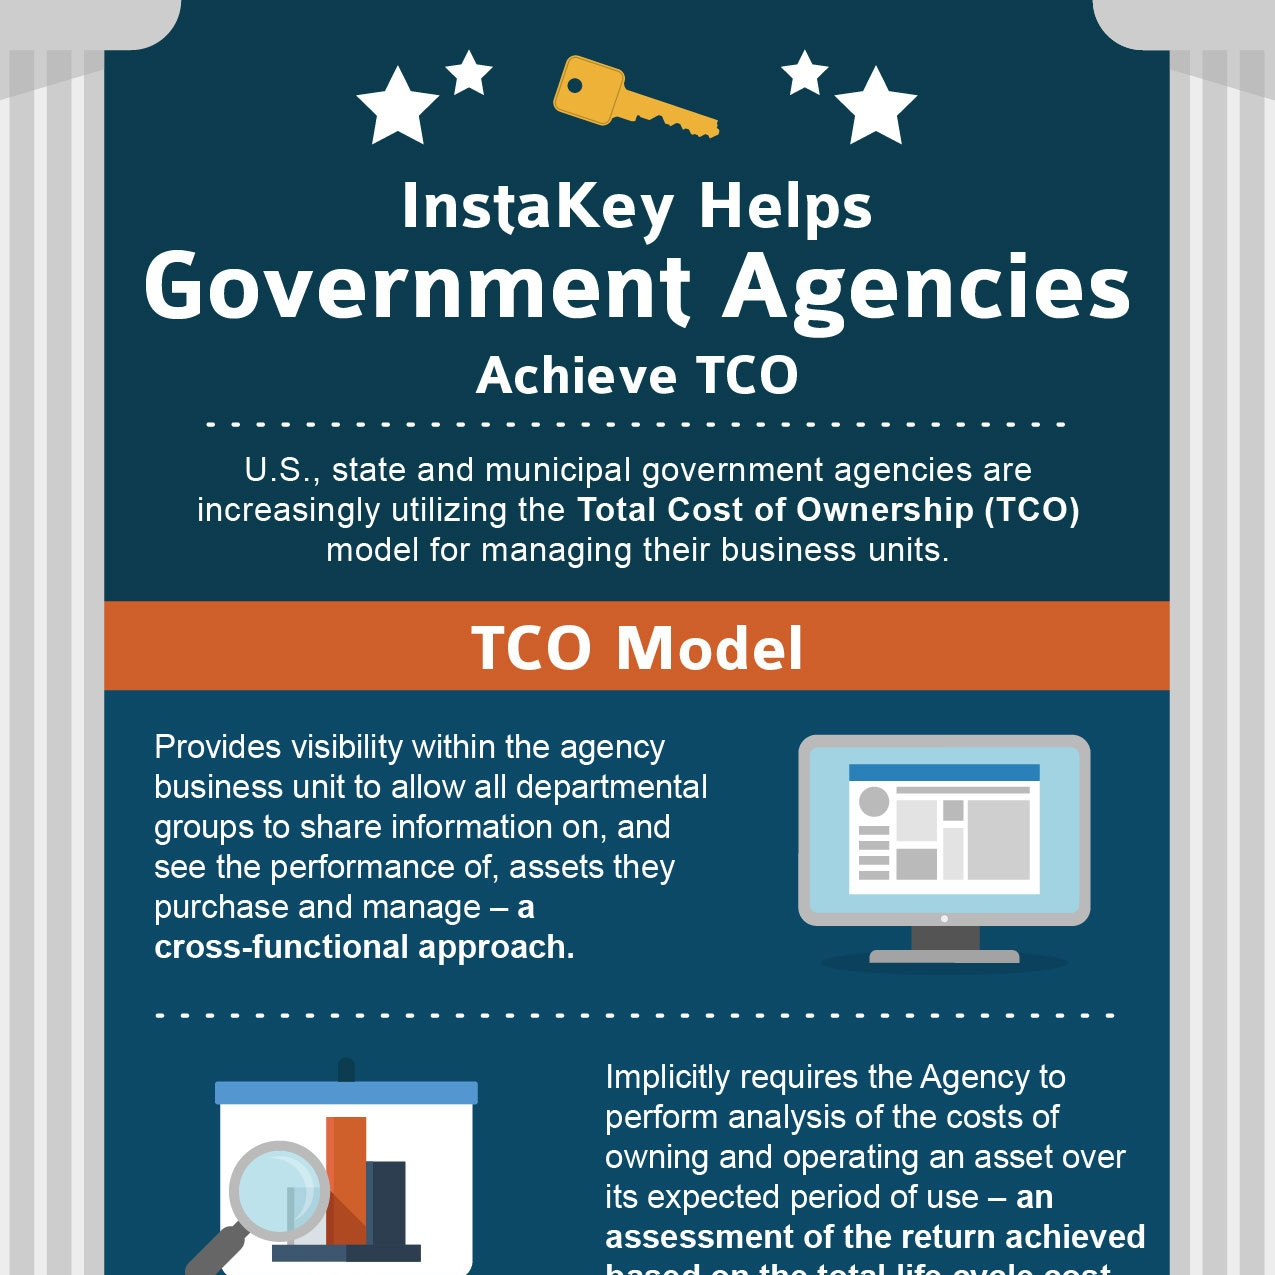 InstaKey Helps Government Agencies Achieve Total Cost of Ownership